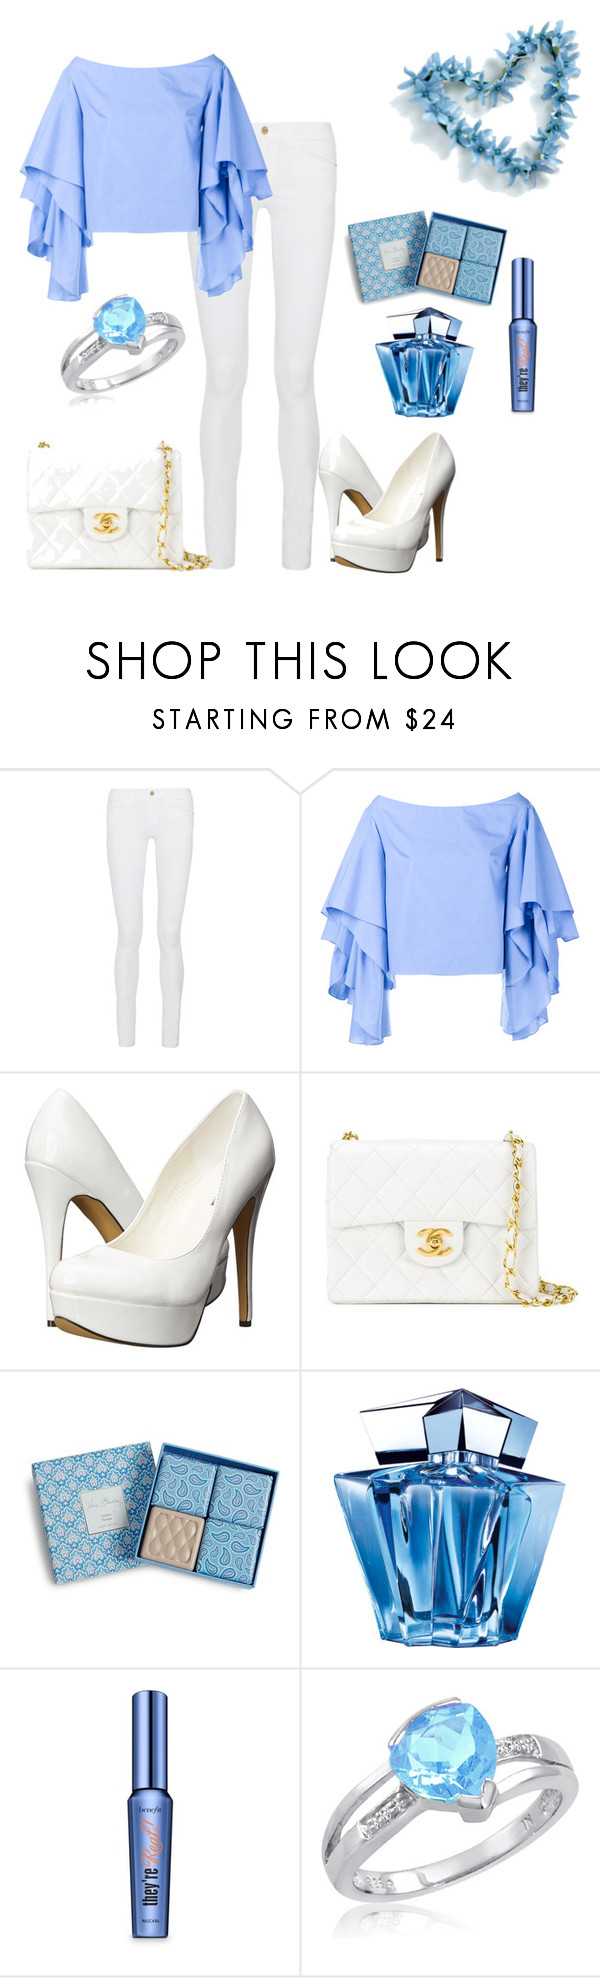 """Light Blue"" by brilliantdawn ❤ liked on Polyvore featuring Frame Denim, Rosie Assoulin, Michael Antonio, Chanel, Vera Bradley, Thierry Mugler, Benefit and Amanda Rose Collection"